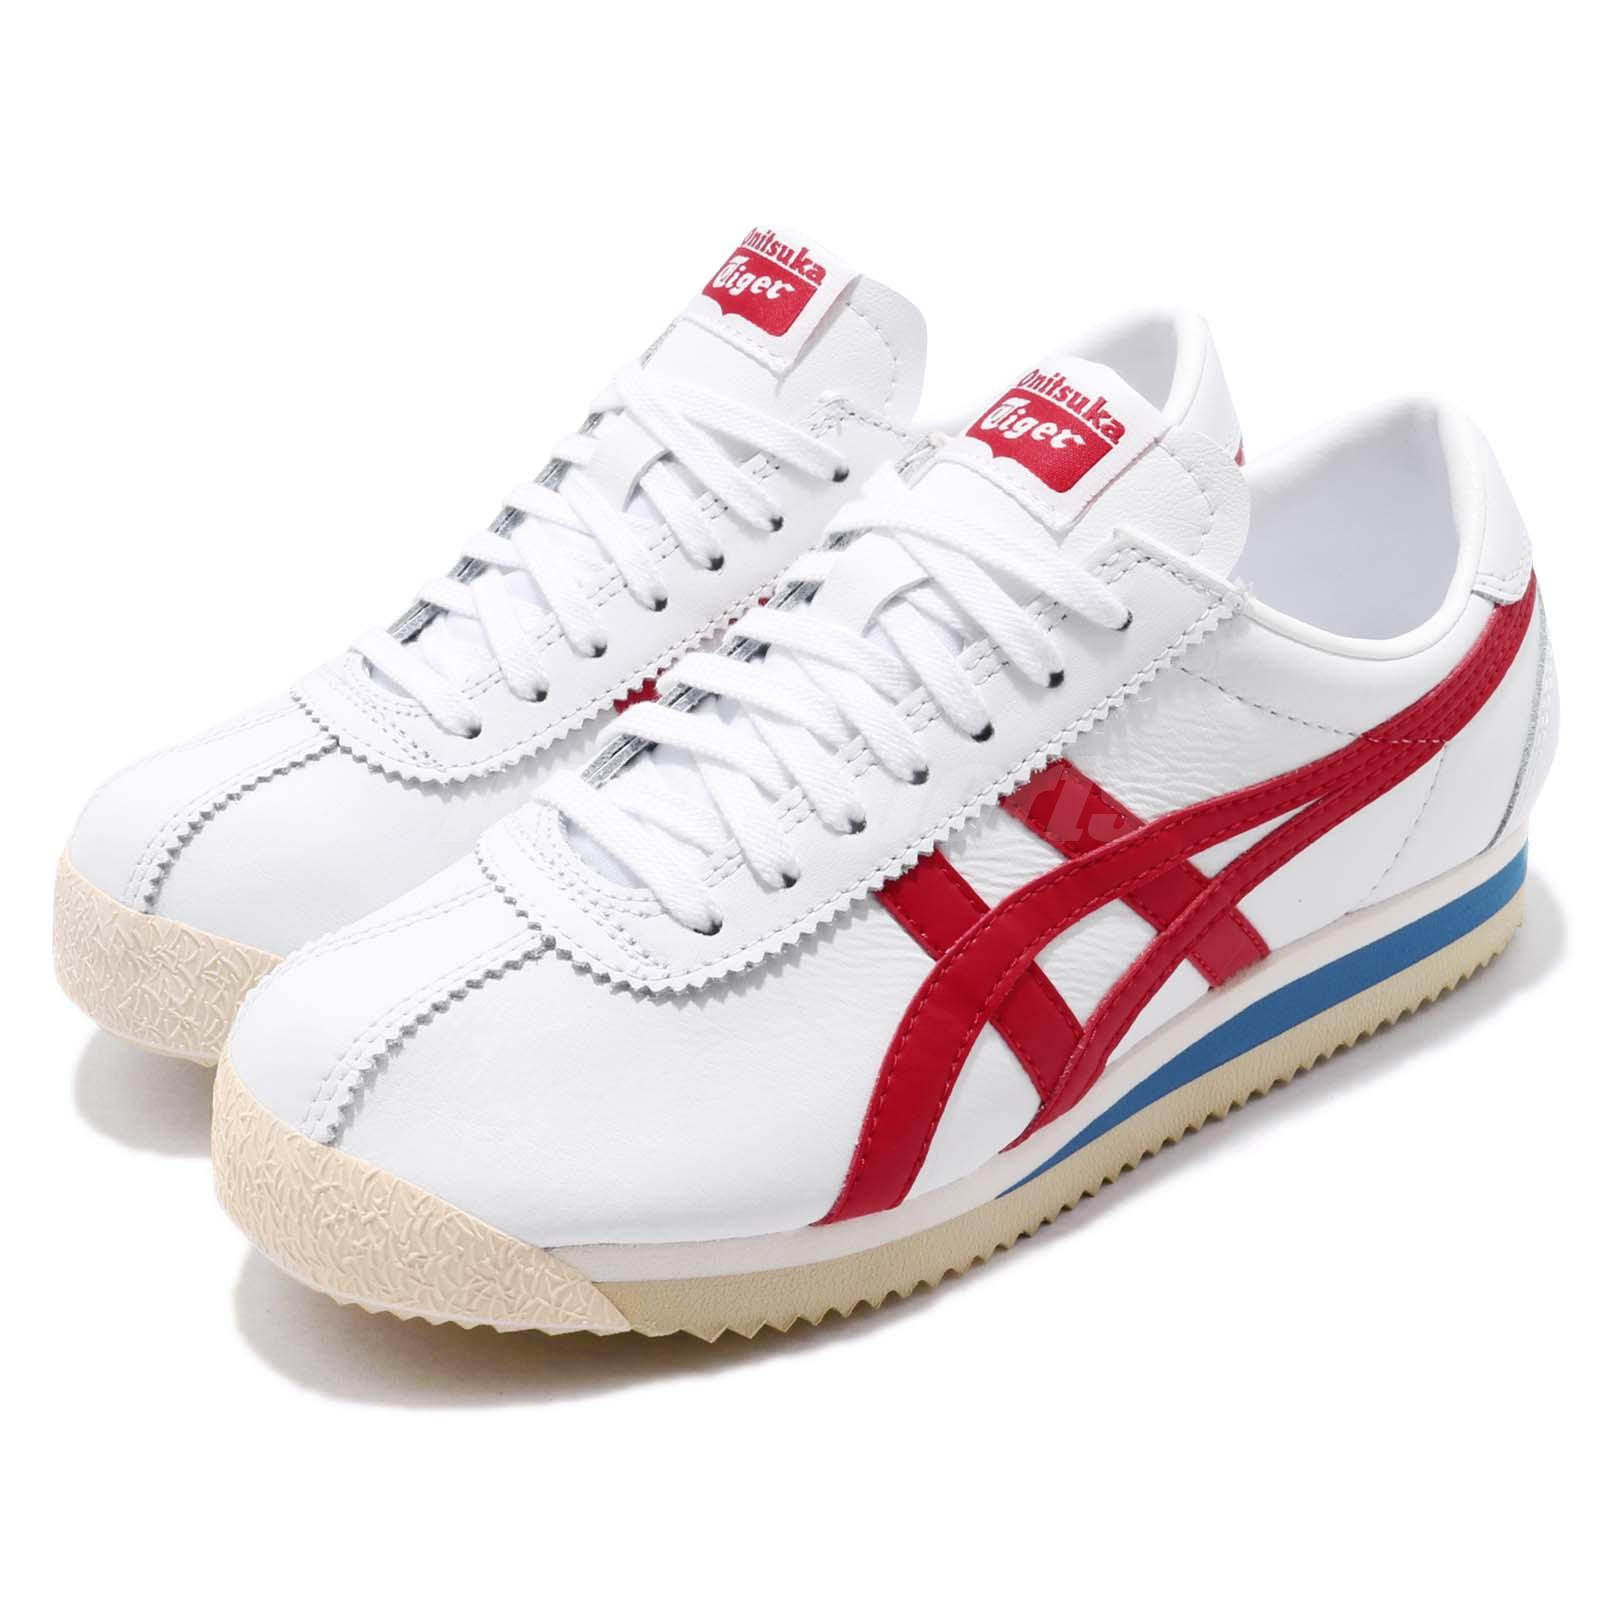 hot sale online 56edb d11f2 Details about Asics Onitsuka Tiger Corsair White Red Blue Mens Retro  Running Shoes D713L-0123